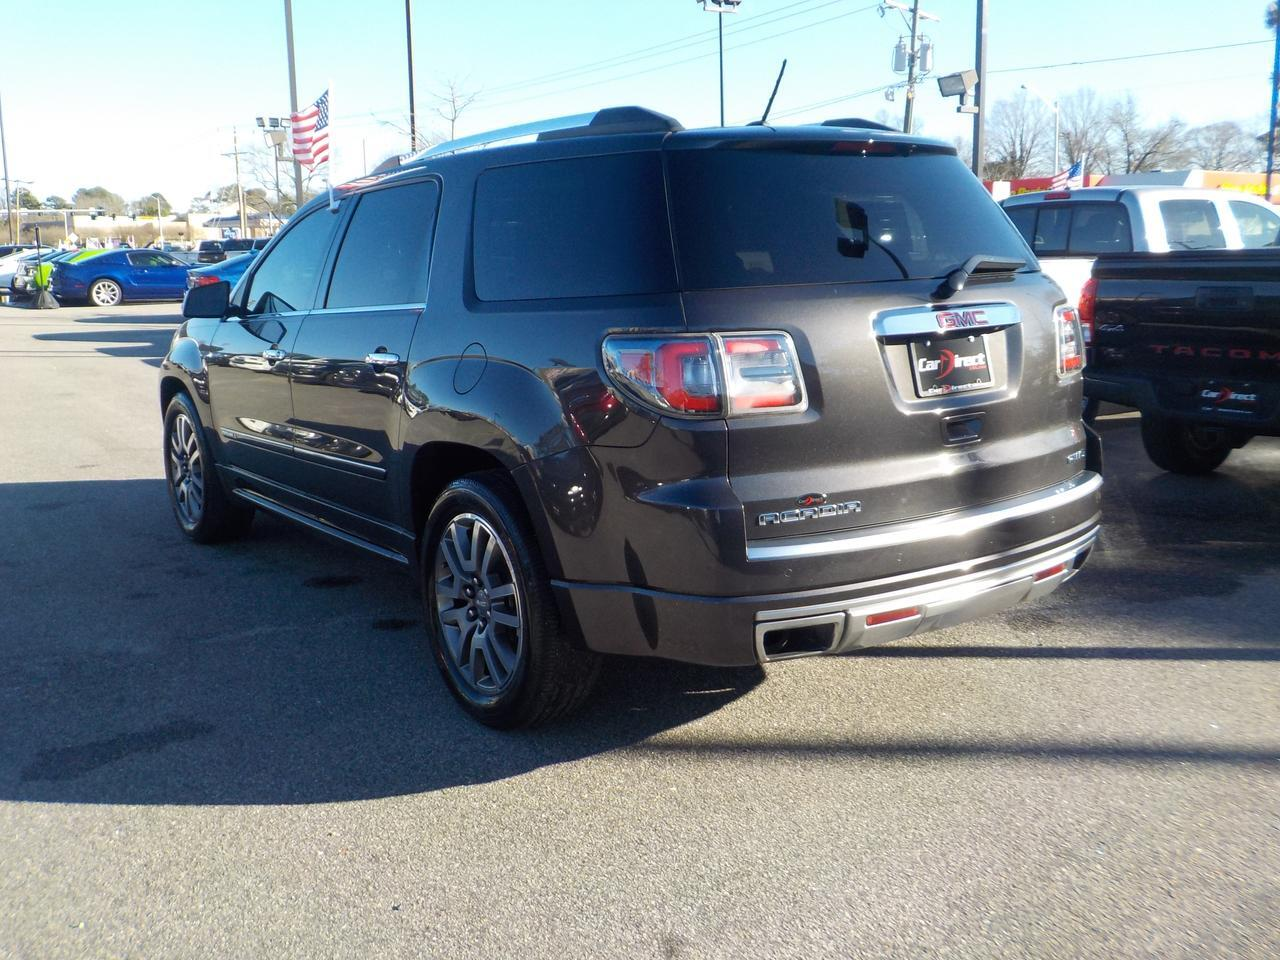 2013 GMC ACADIA DENALI AWD, LEATHER HEATED & COOLED SEATS, TOW PACKAGE, BOSE SOUND, REMOTE START, ONLY 91K MILES! Virginia Beach VA